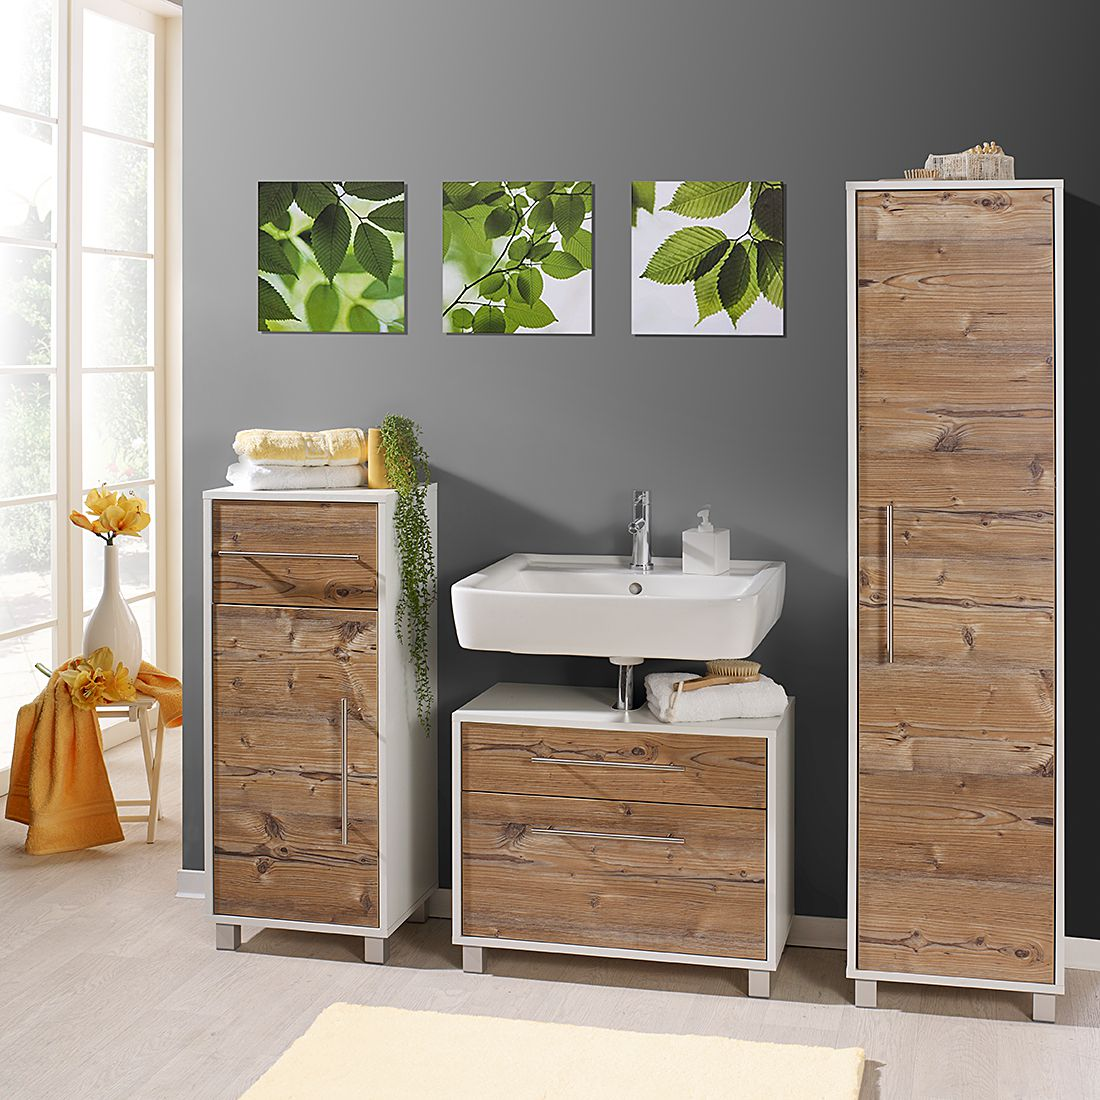 badezimmerset moncton i 3 teilig silberfiche dekor wei giessbach g nstig kaufen. Black Bedroom Furniture Sets. Home Design Ideas